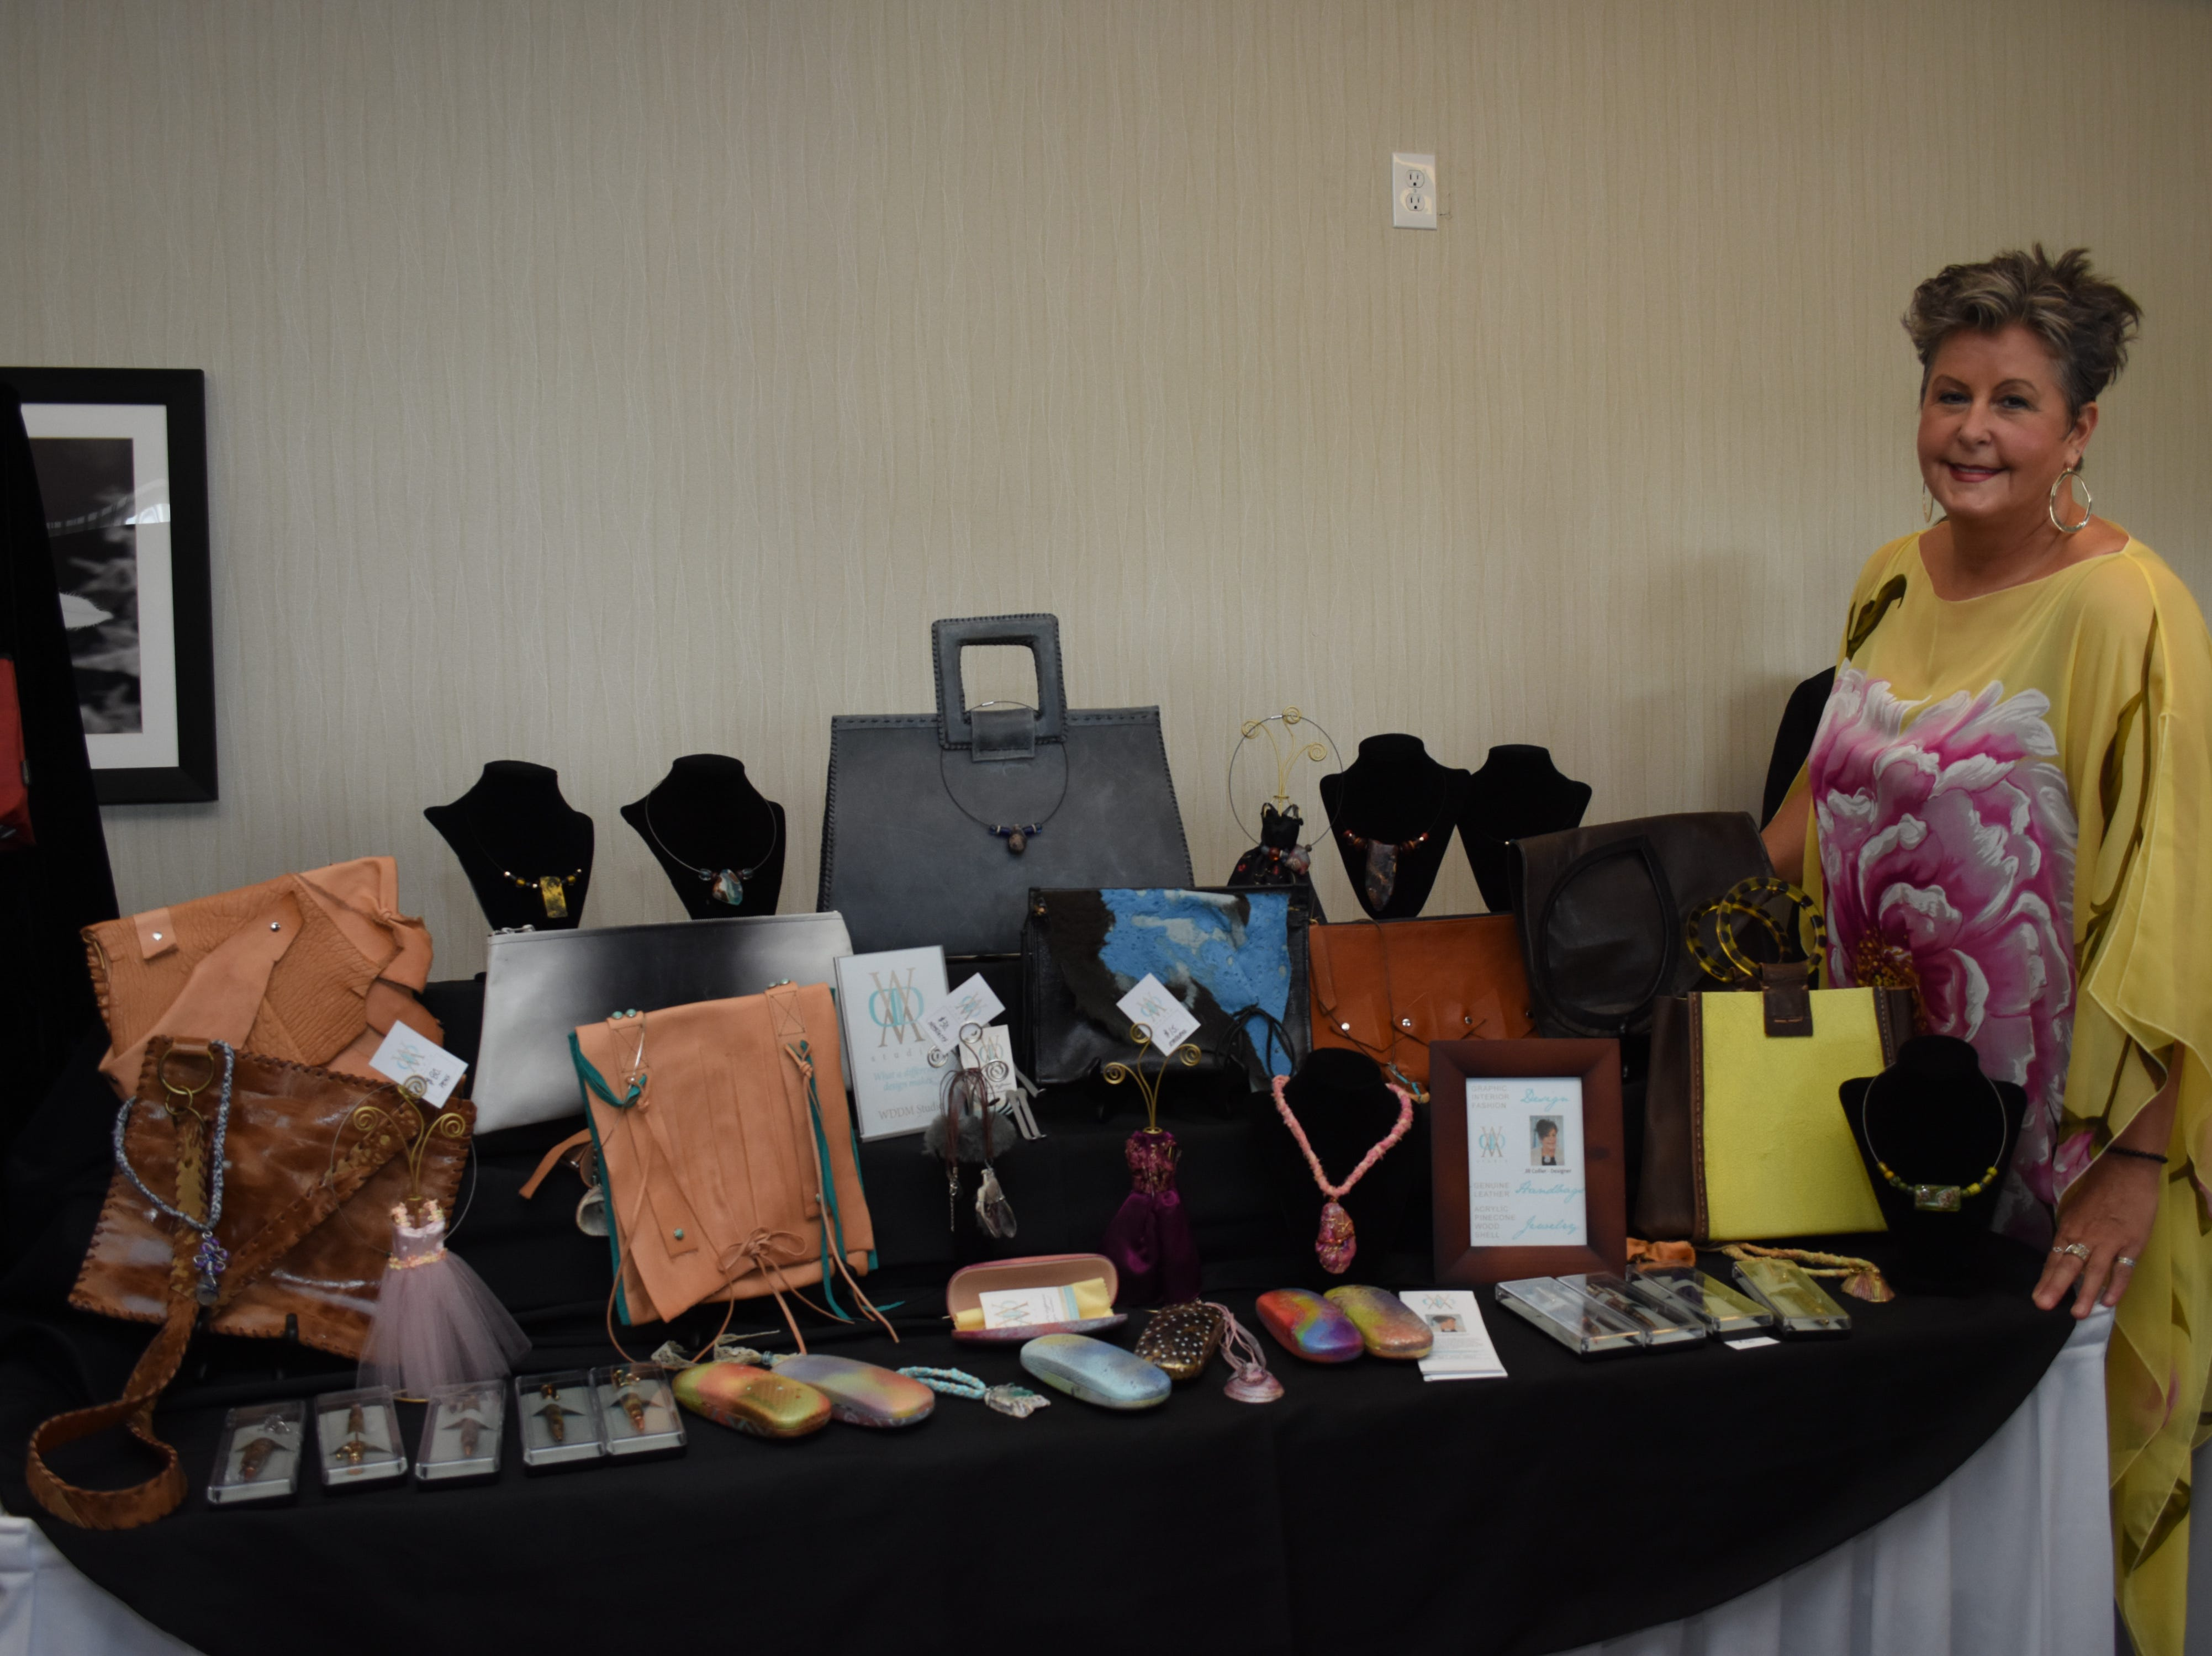 Jill Collier poses with her items for sale.